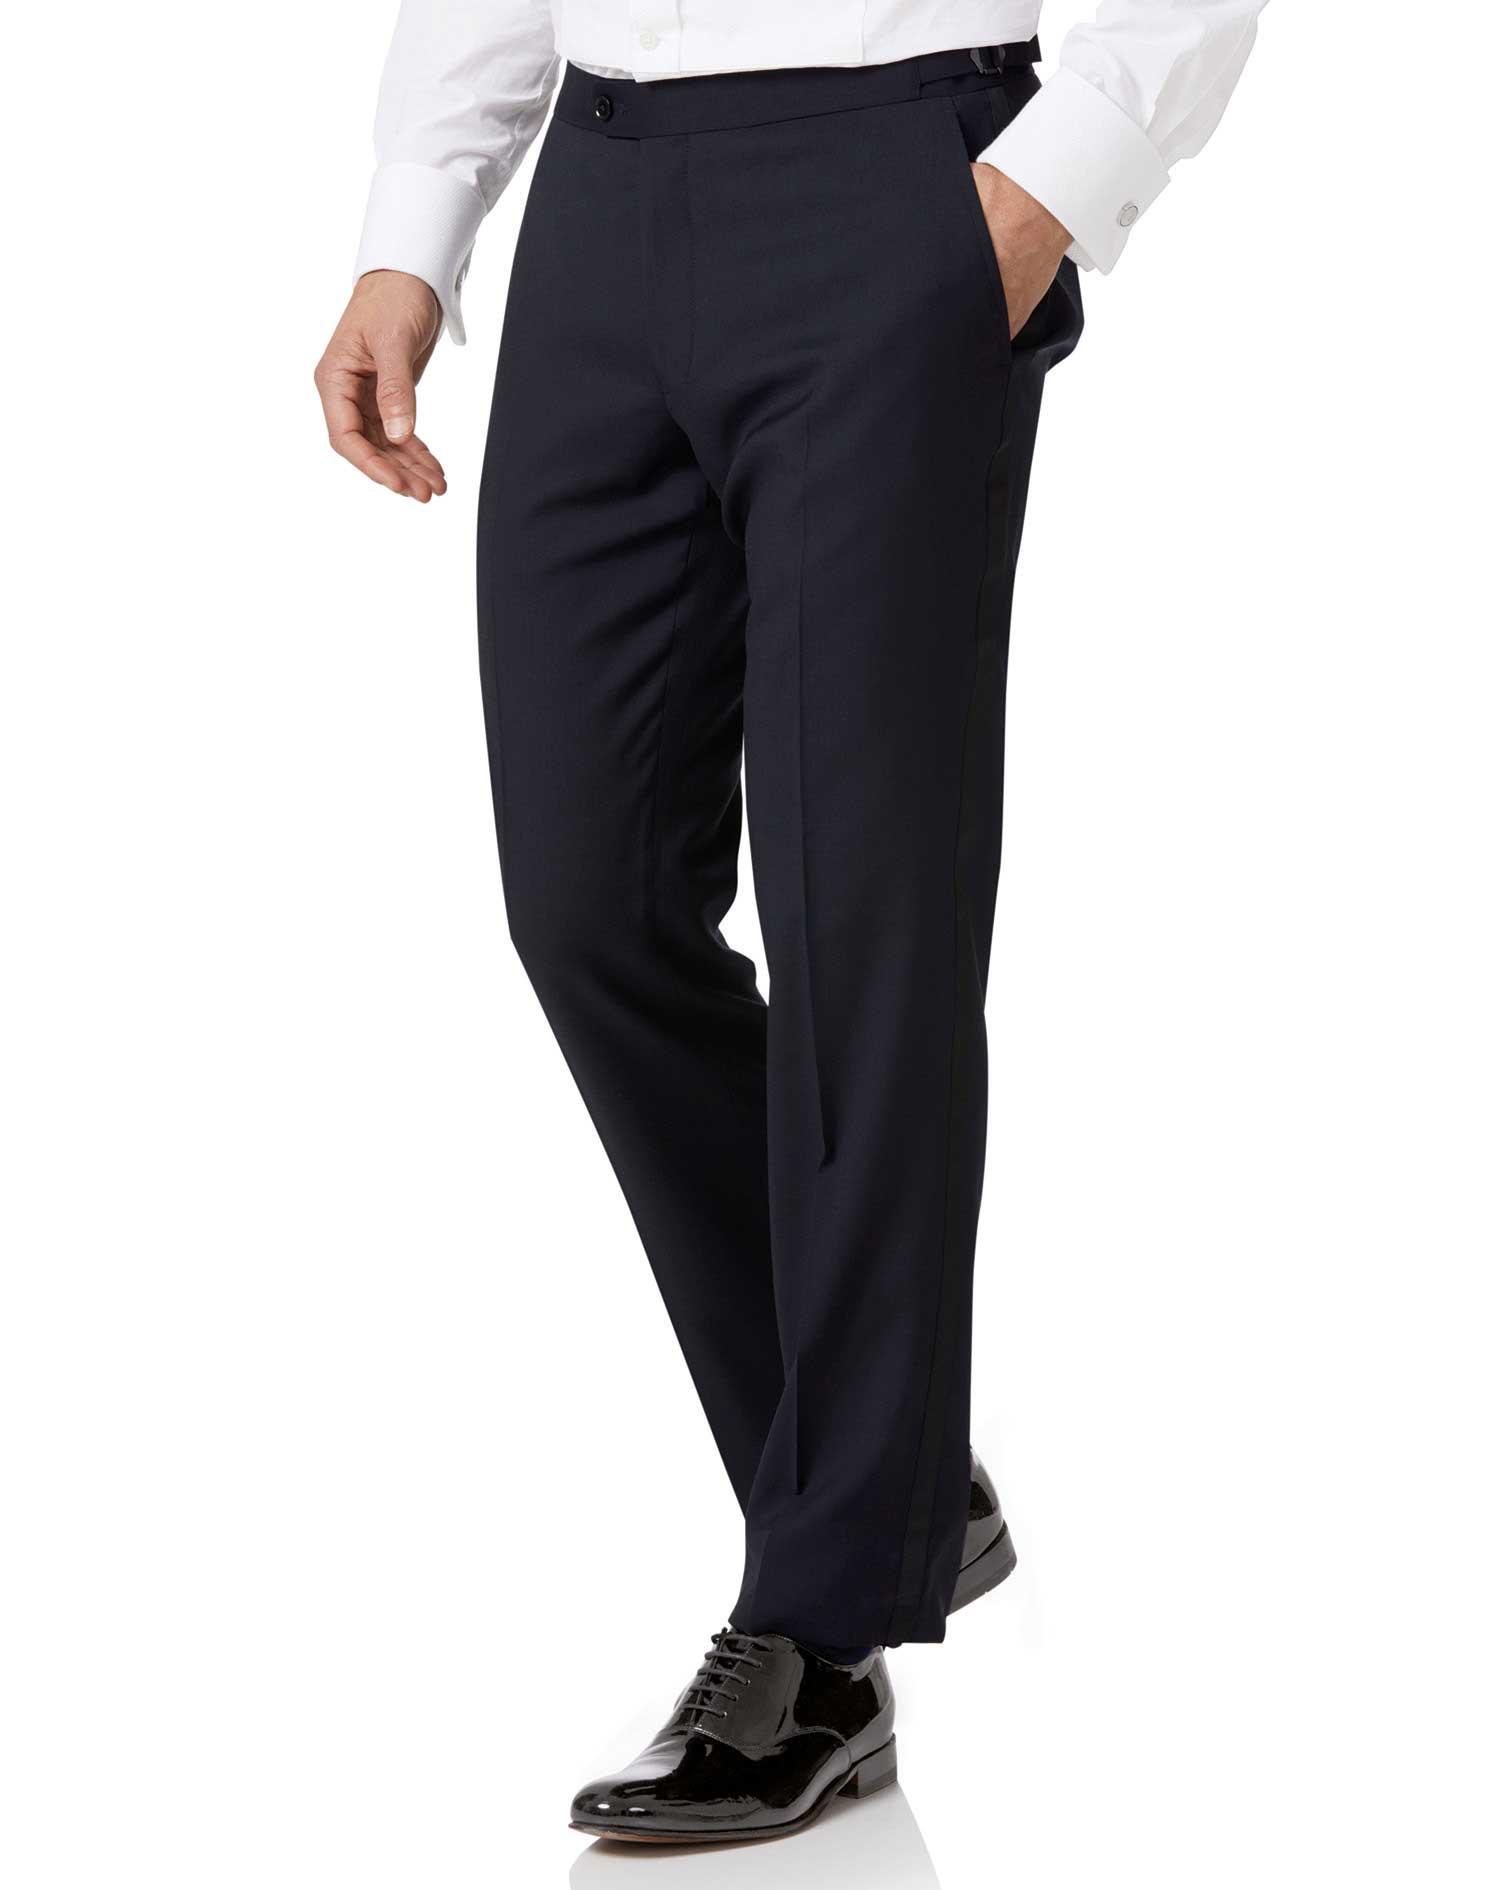 1920s Tuxedo, Hats, Shoes, Shirts and Formal Wear Midnight Blue Slim Fit Tuxedo Trousers Size W38 L32 by Charles Tyrwhitt £100.00 AT vintagedancer.com